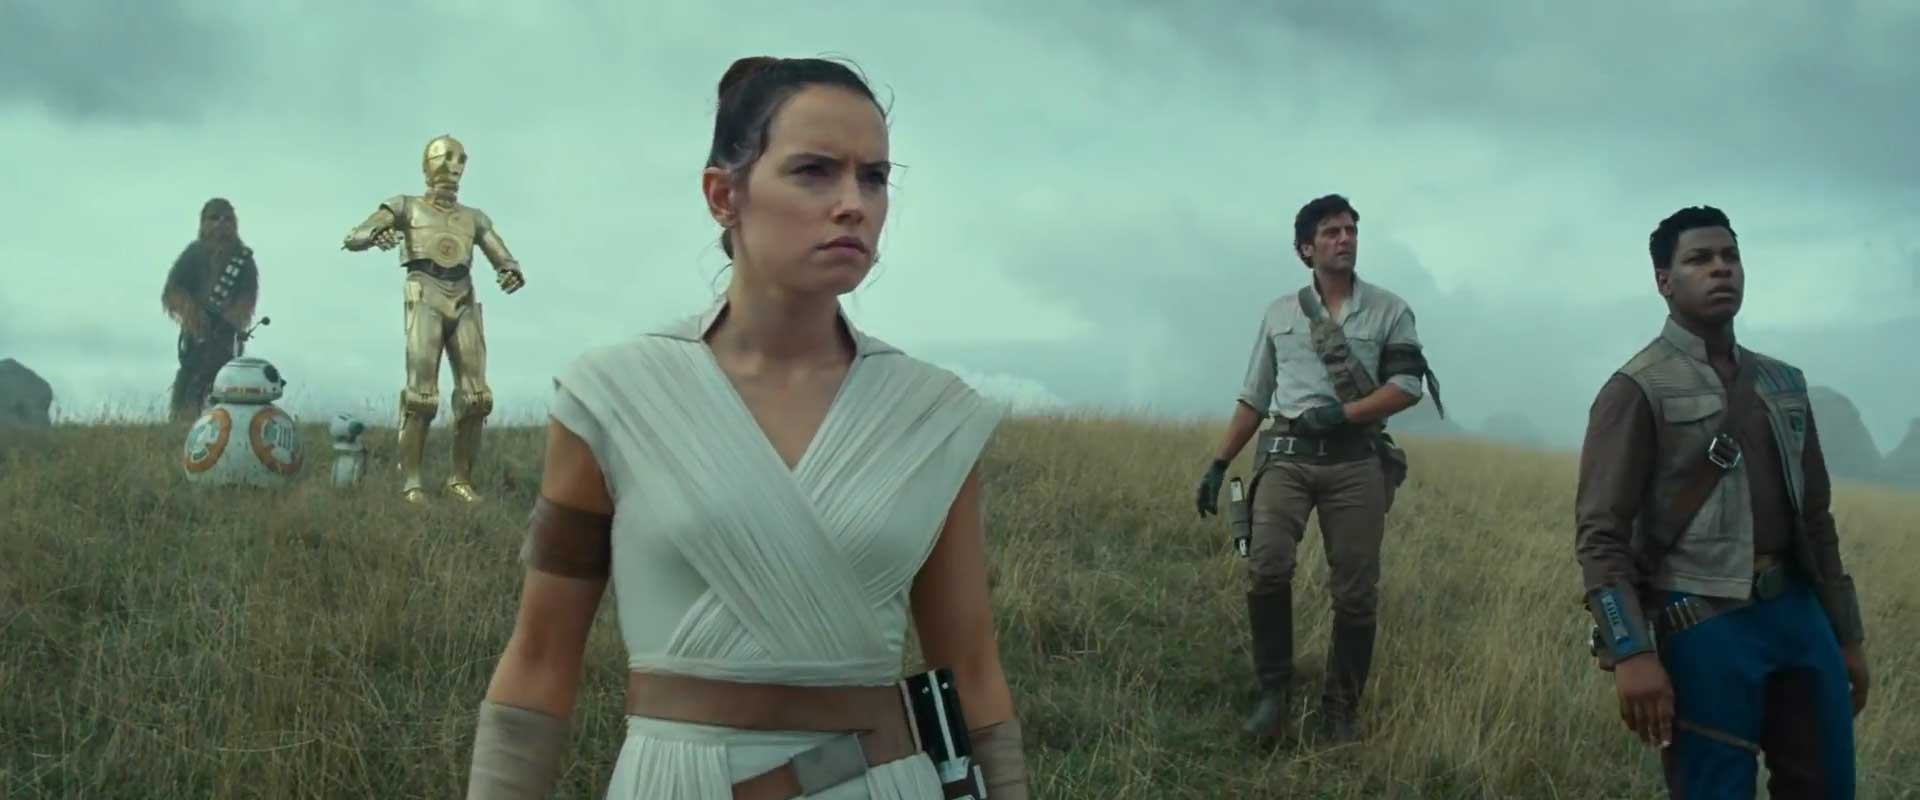 If I Were Making The Sequel Trilogy Part Three The Rise Of Skywalker Chuck Wendig Terribleminds